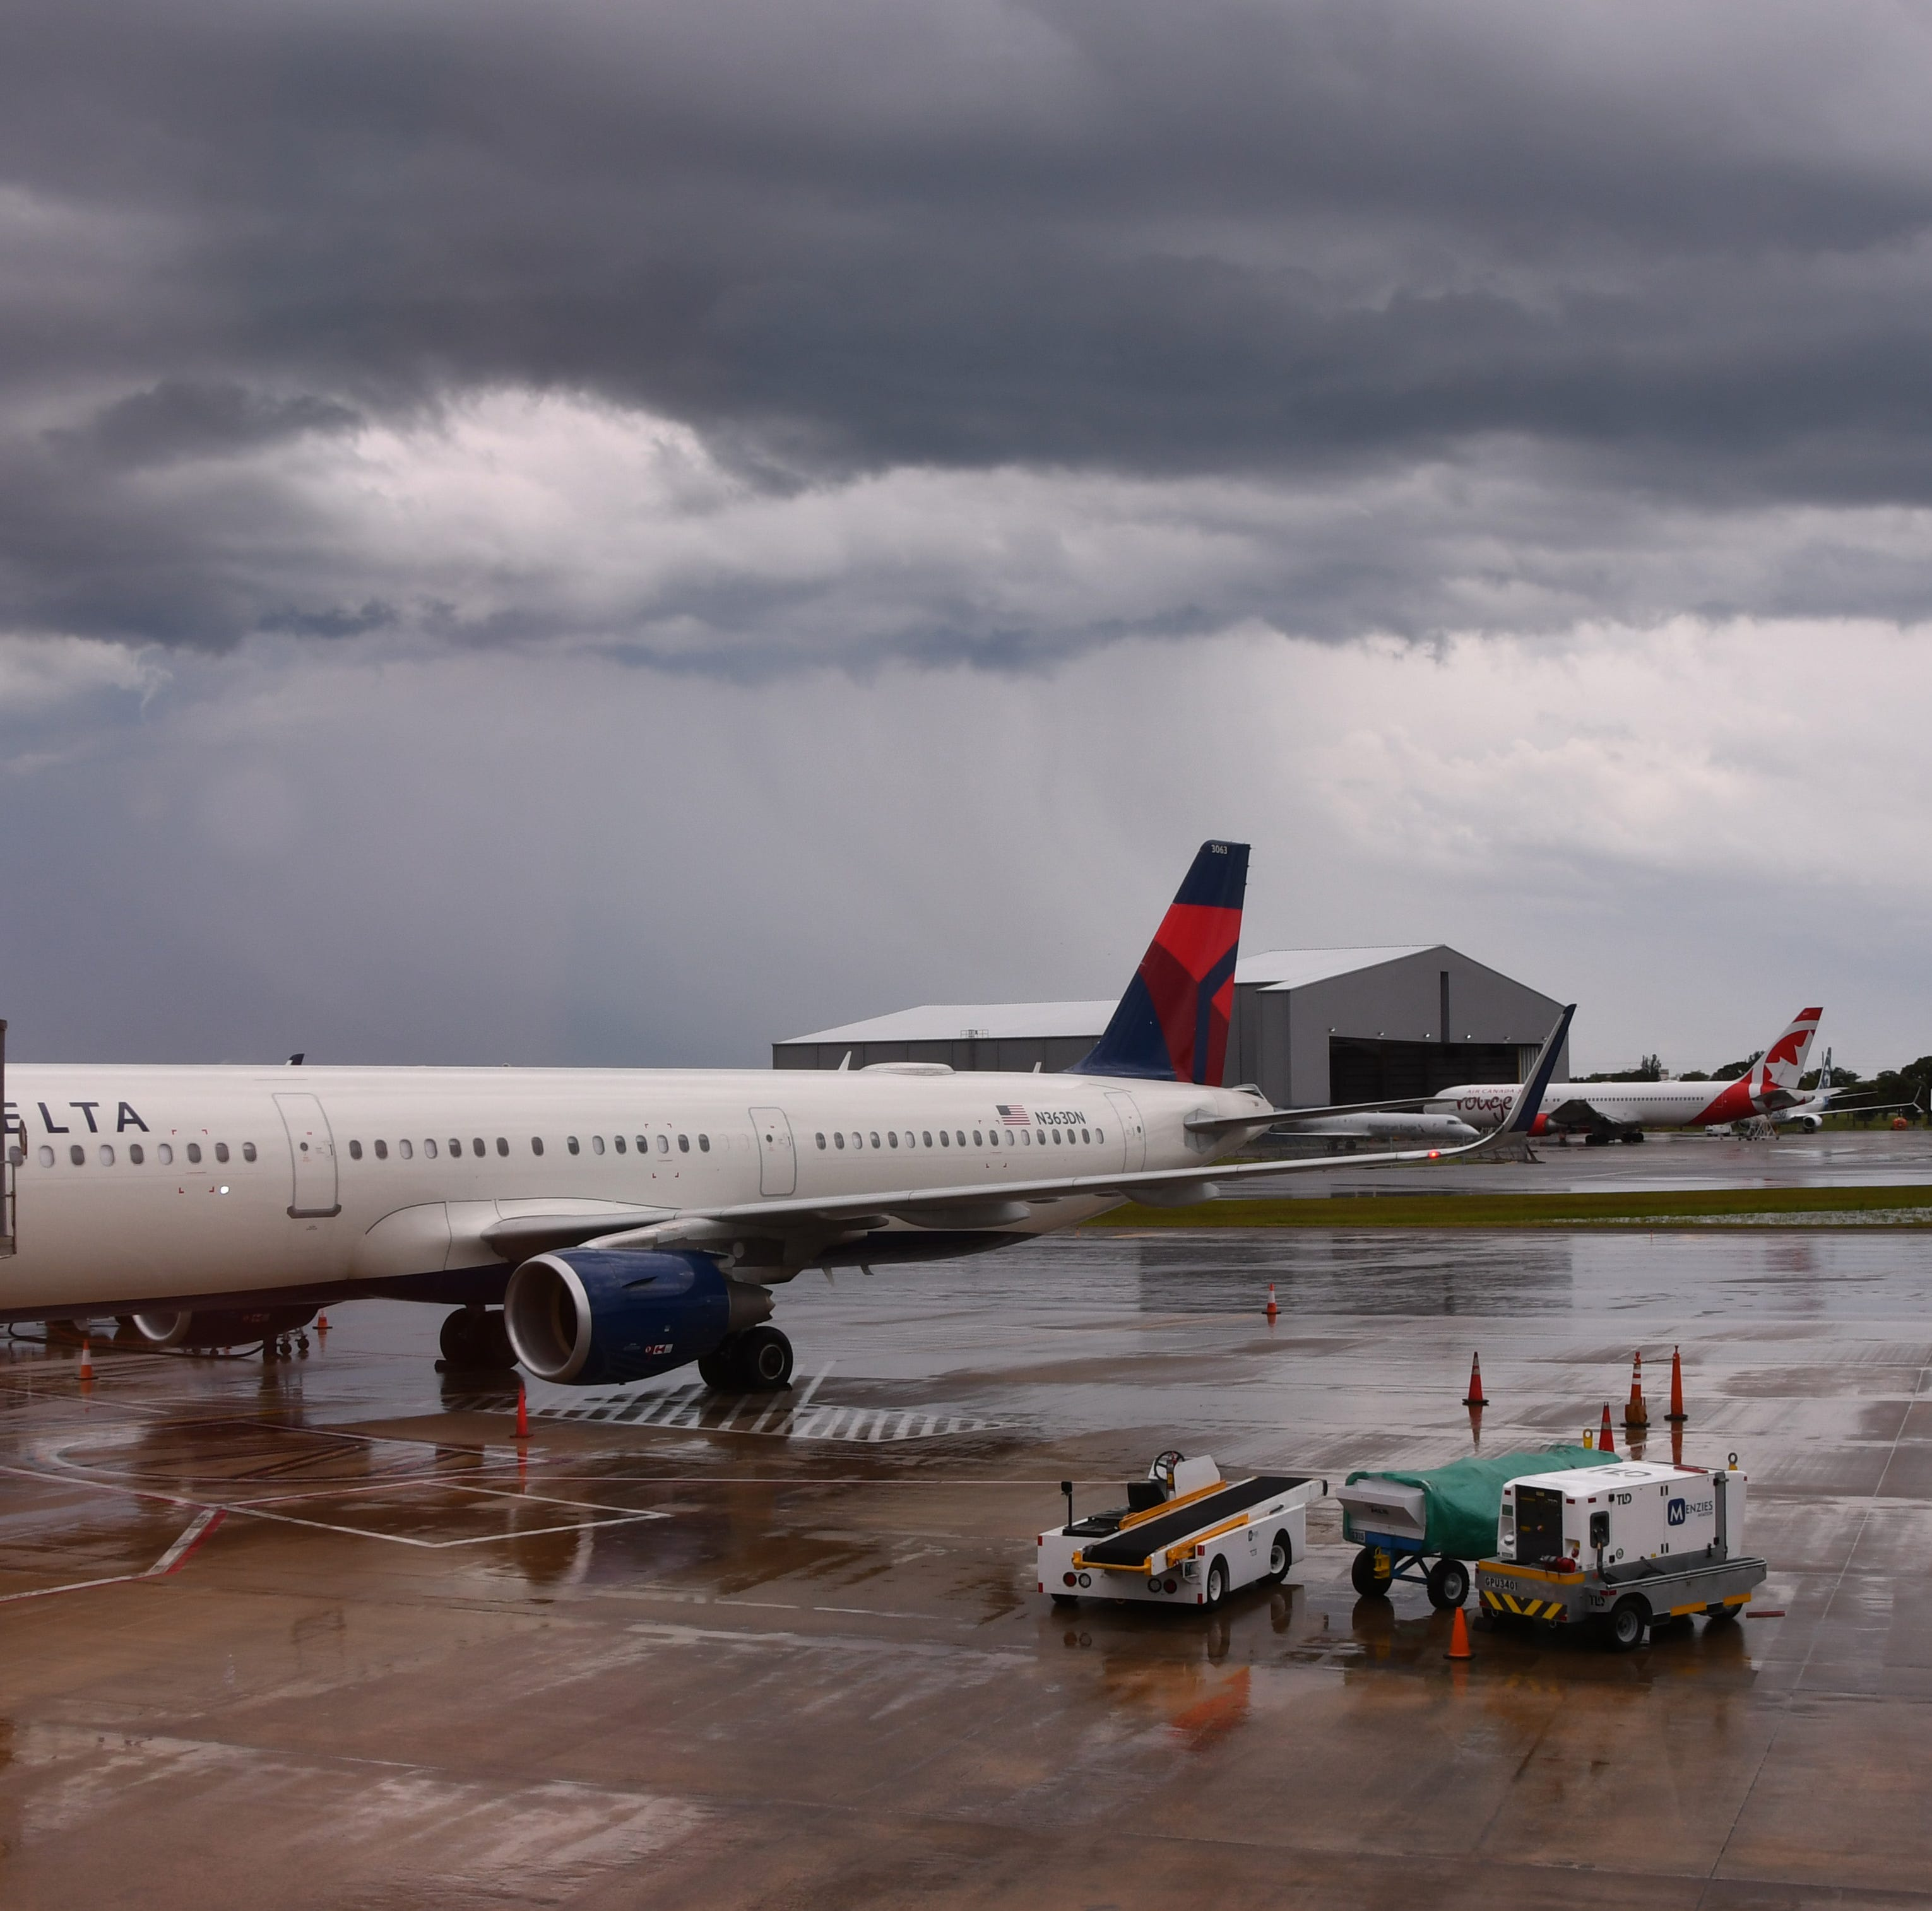 Rough weather forces domestic Airbus flight from New York to divert to Orlando Melbourne International Airport